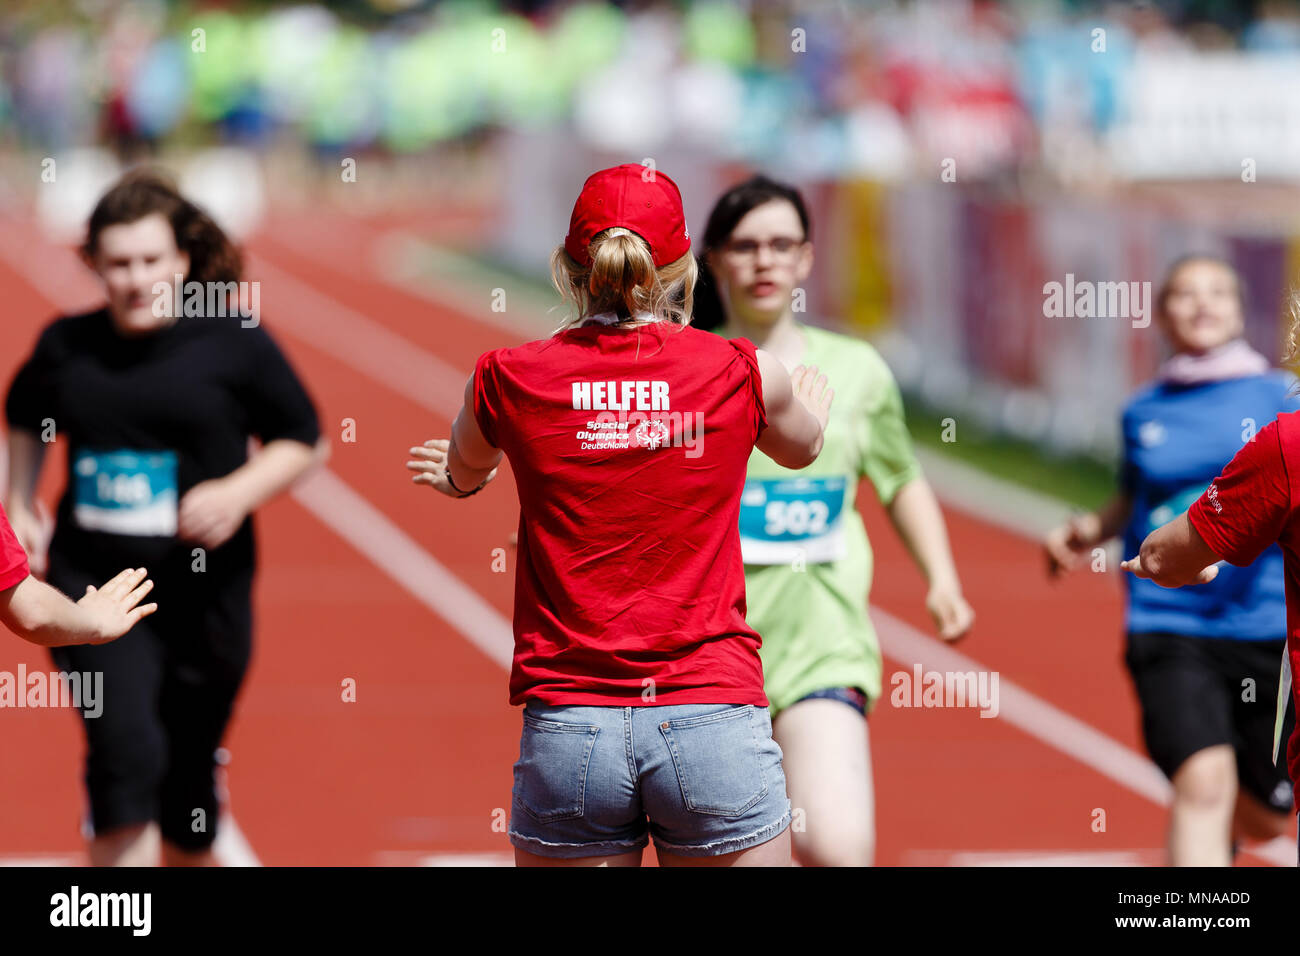 15 May 2018, Germany, Kiel: An assistant receiving runners at the finish line during the Special Olympics, the national summer games for people with psychological or multiple disabilities. The Special Olympics take place between 14 and 18 May 2018. Photo: Frank Molter/dpa - Stock Image